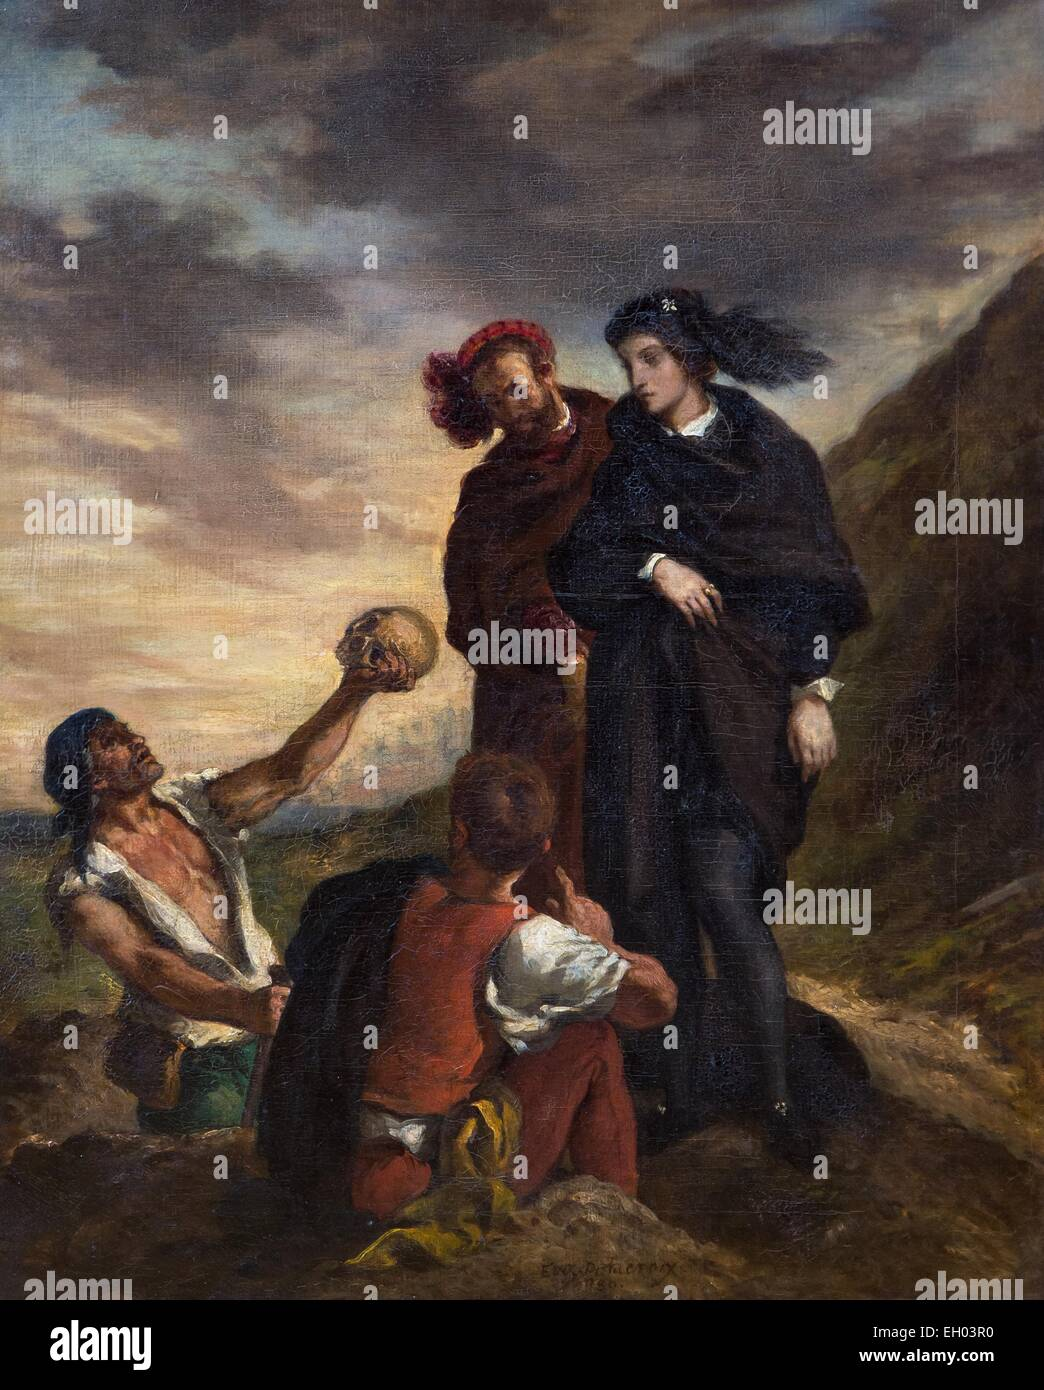 ActiveMuseum_0003348.jpg / Hamlet with Horatio (the gravedigger scene) - oil on canvas 25/09/2013  -   / 19th century - Stock Image